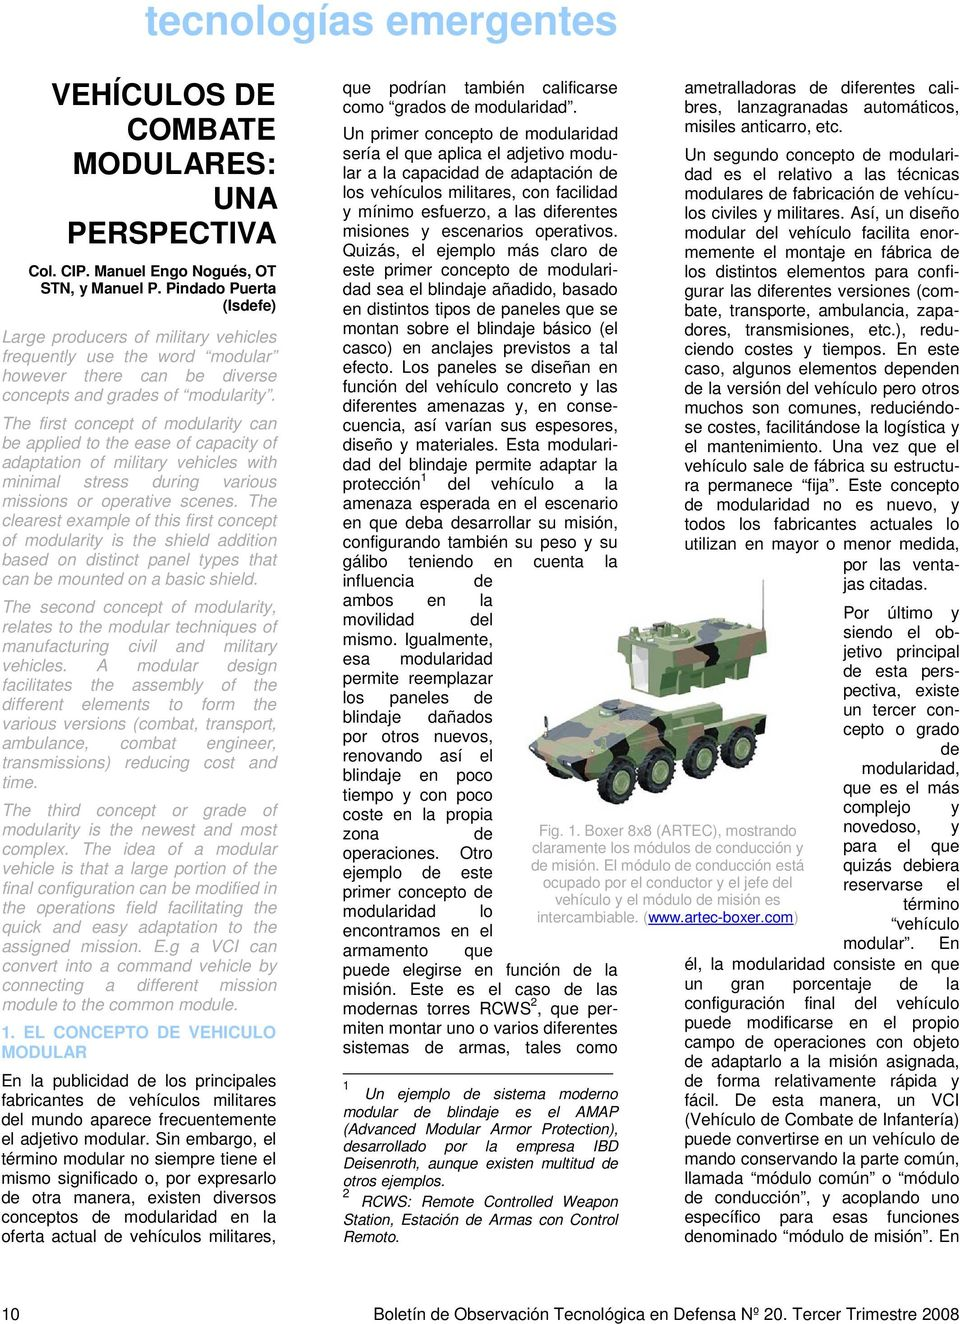 The first concept of modularity can be applied to the ease of capacity of adaptation of military vehicles with minimal stress during various missions or operative scenes.